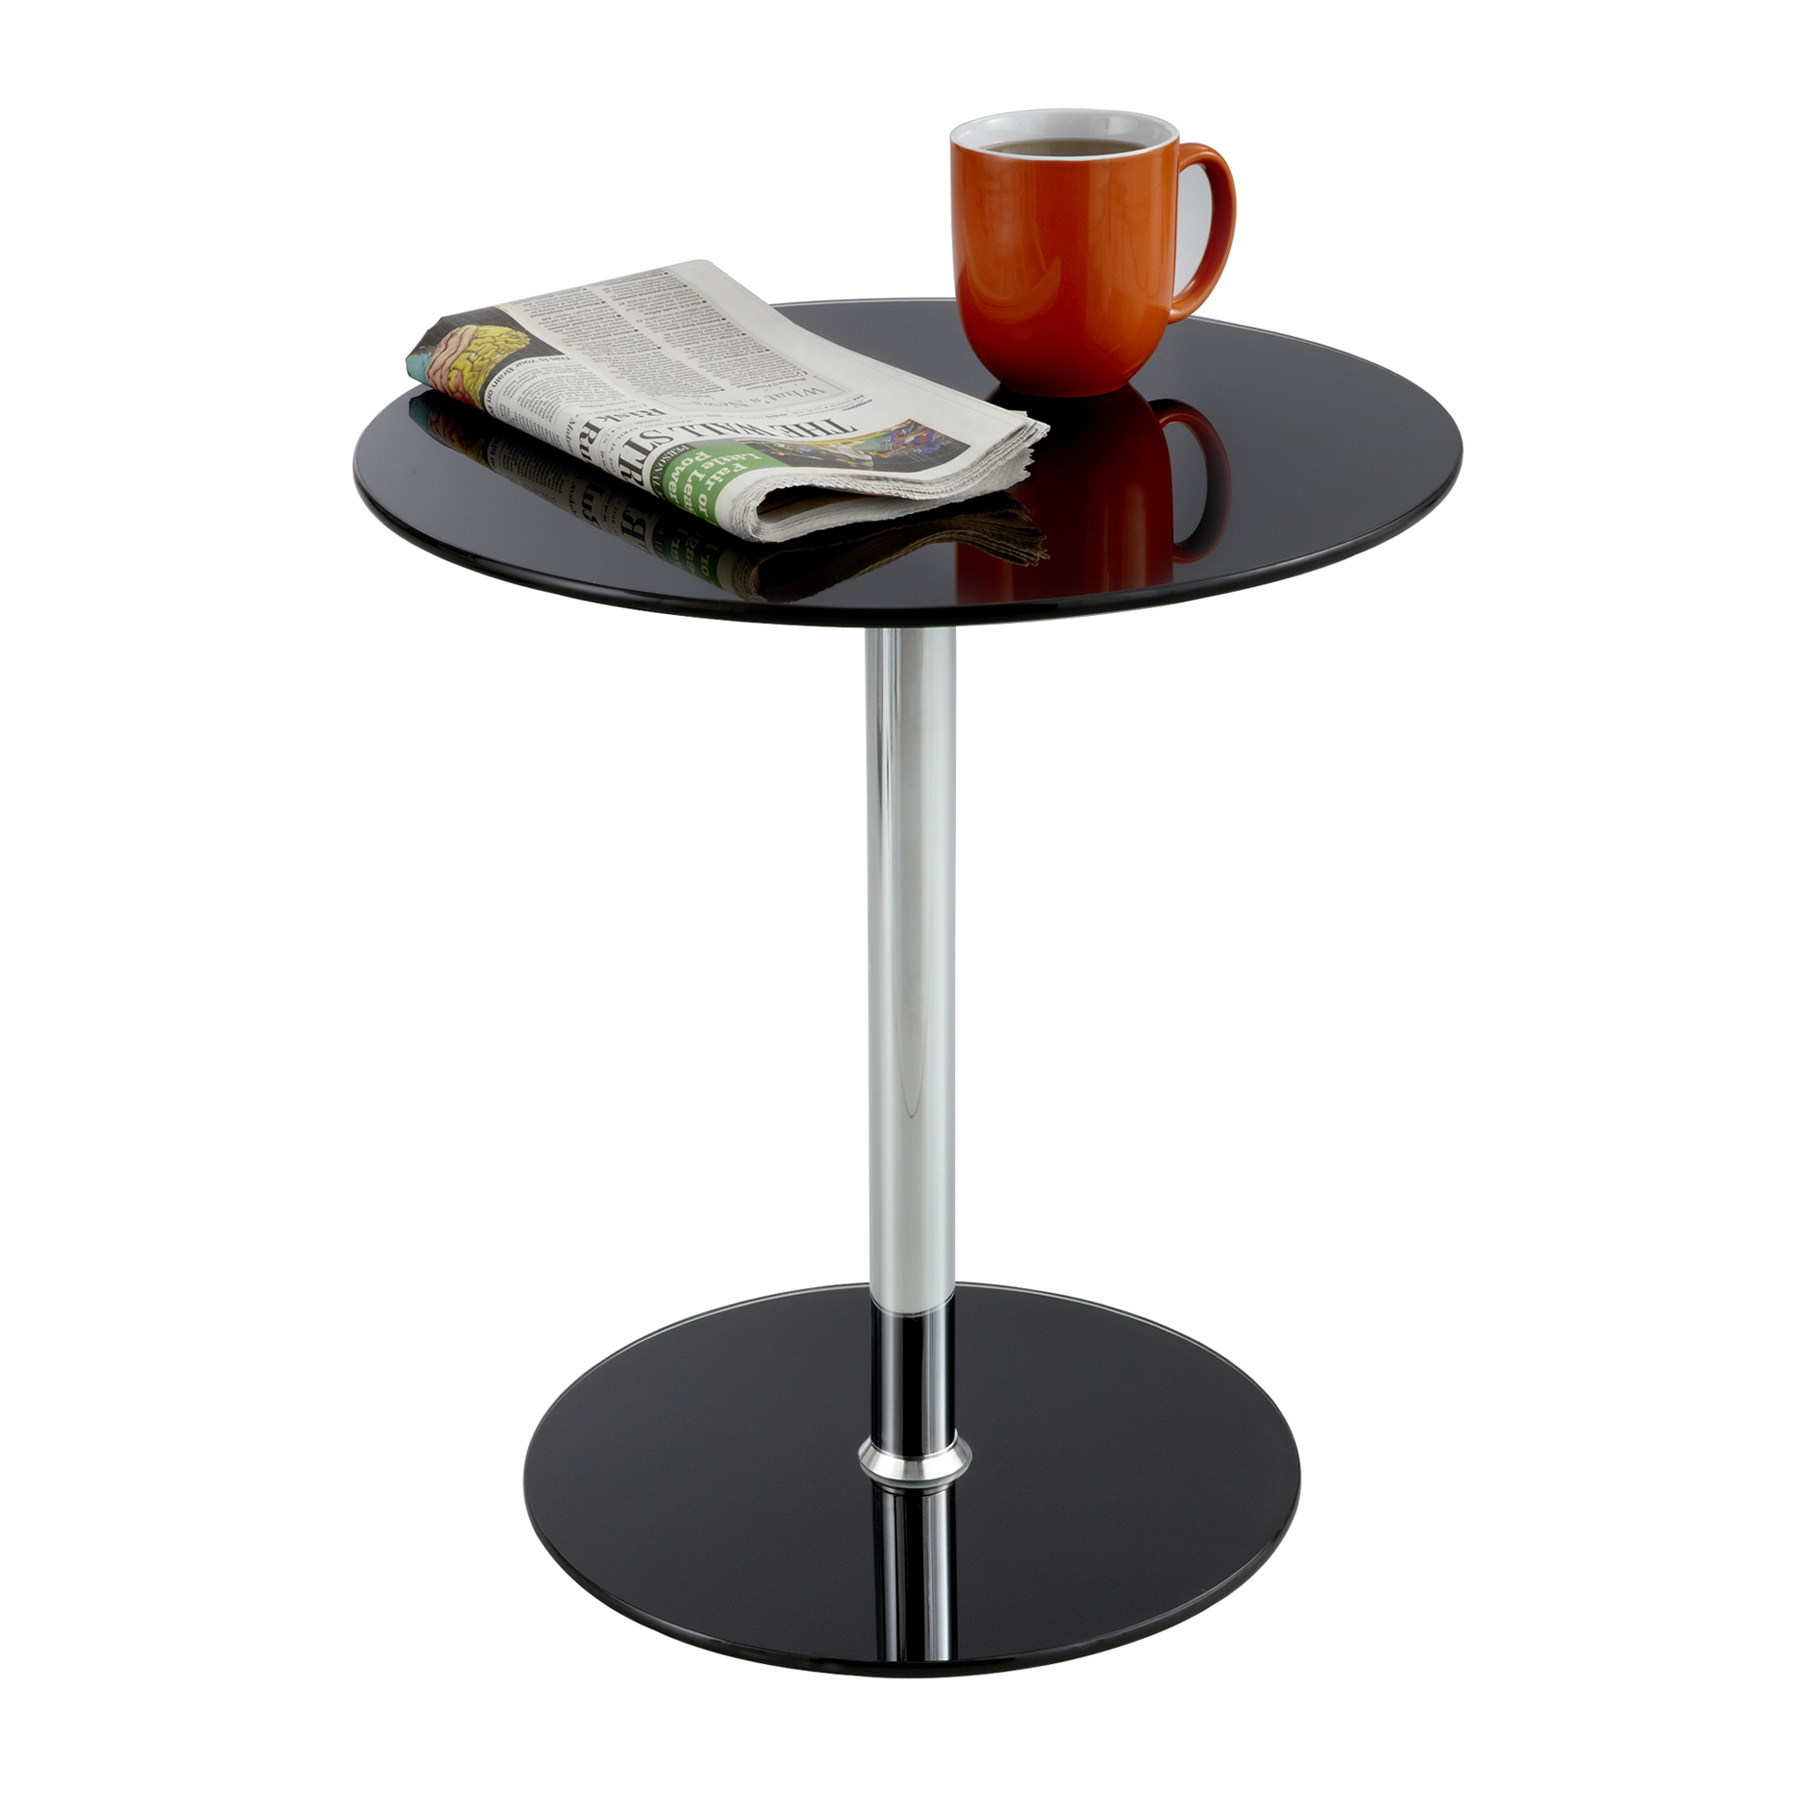 glass accent table safco products extra long three piece end set modern outdoor nic tables with storage ikea round wicker antique iron beds side marble small room couch dark brown